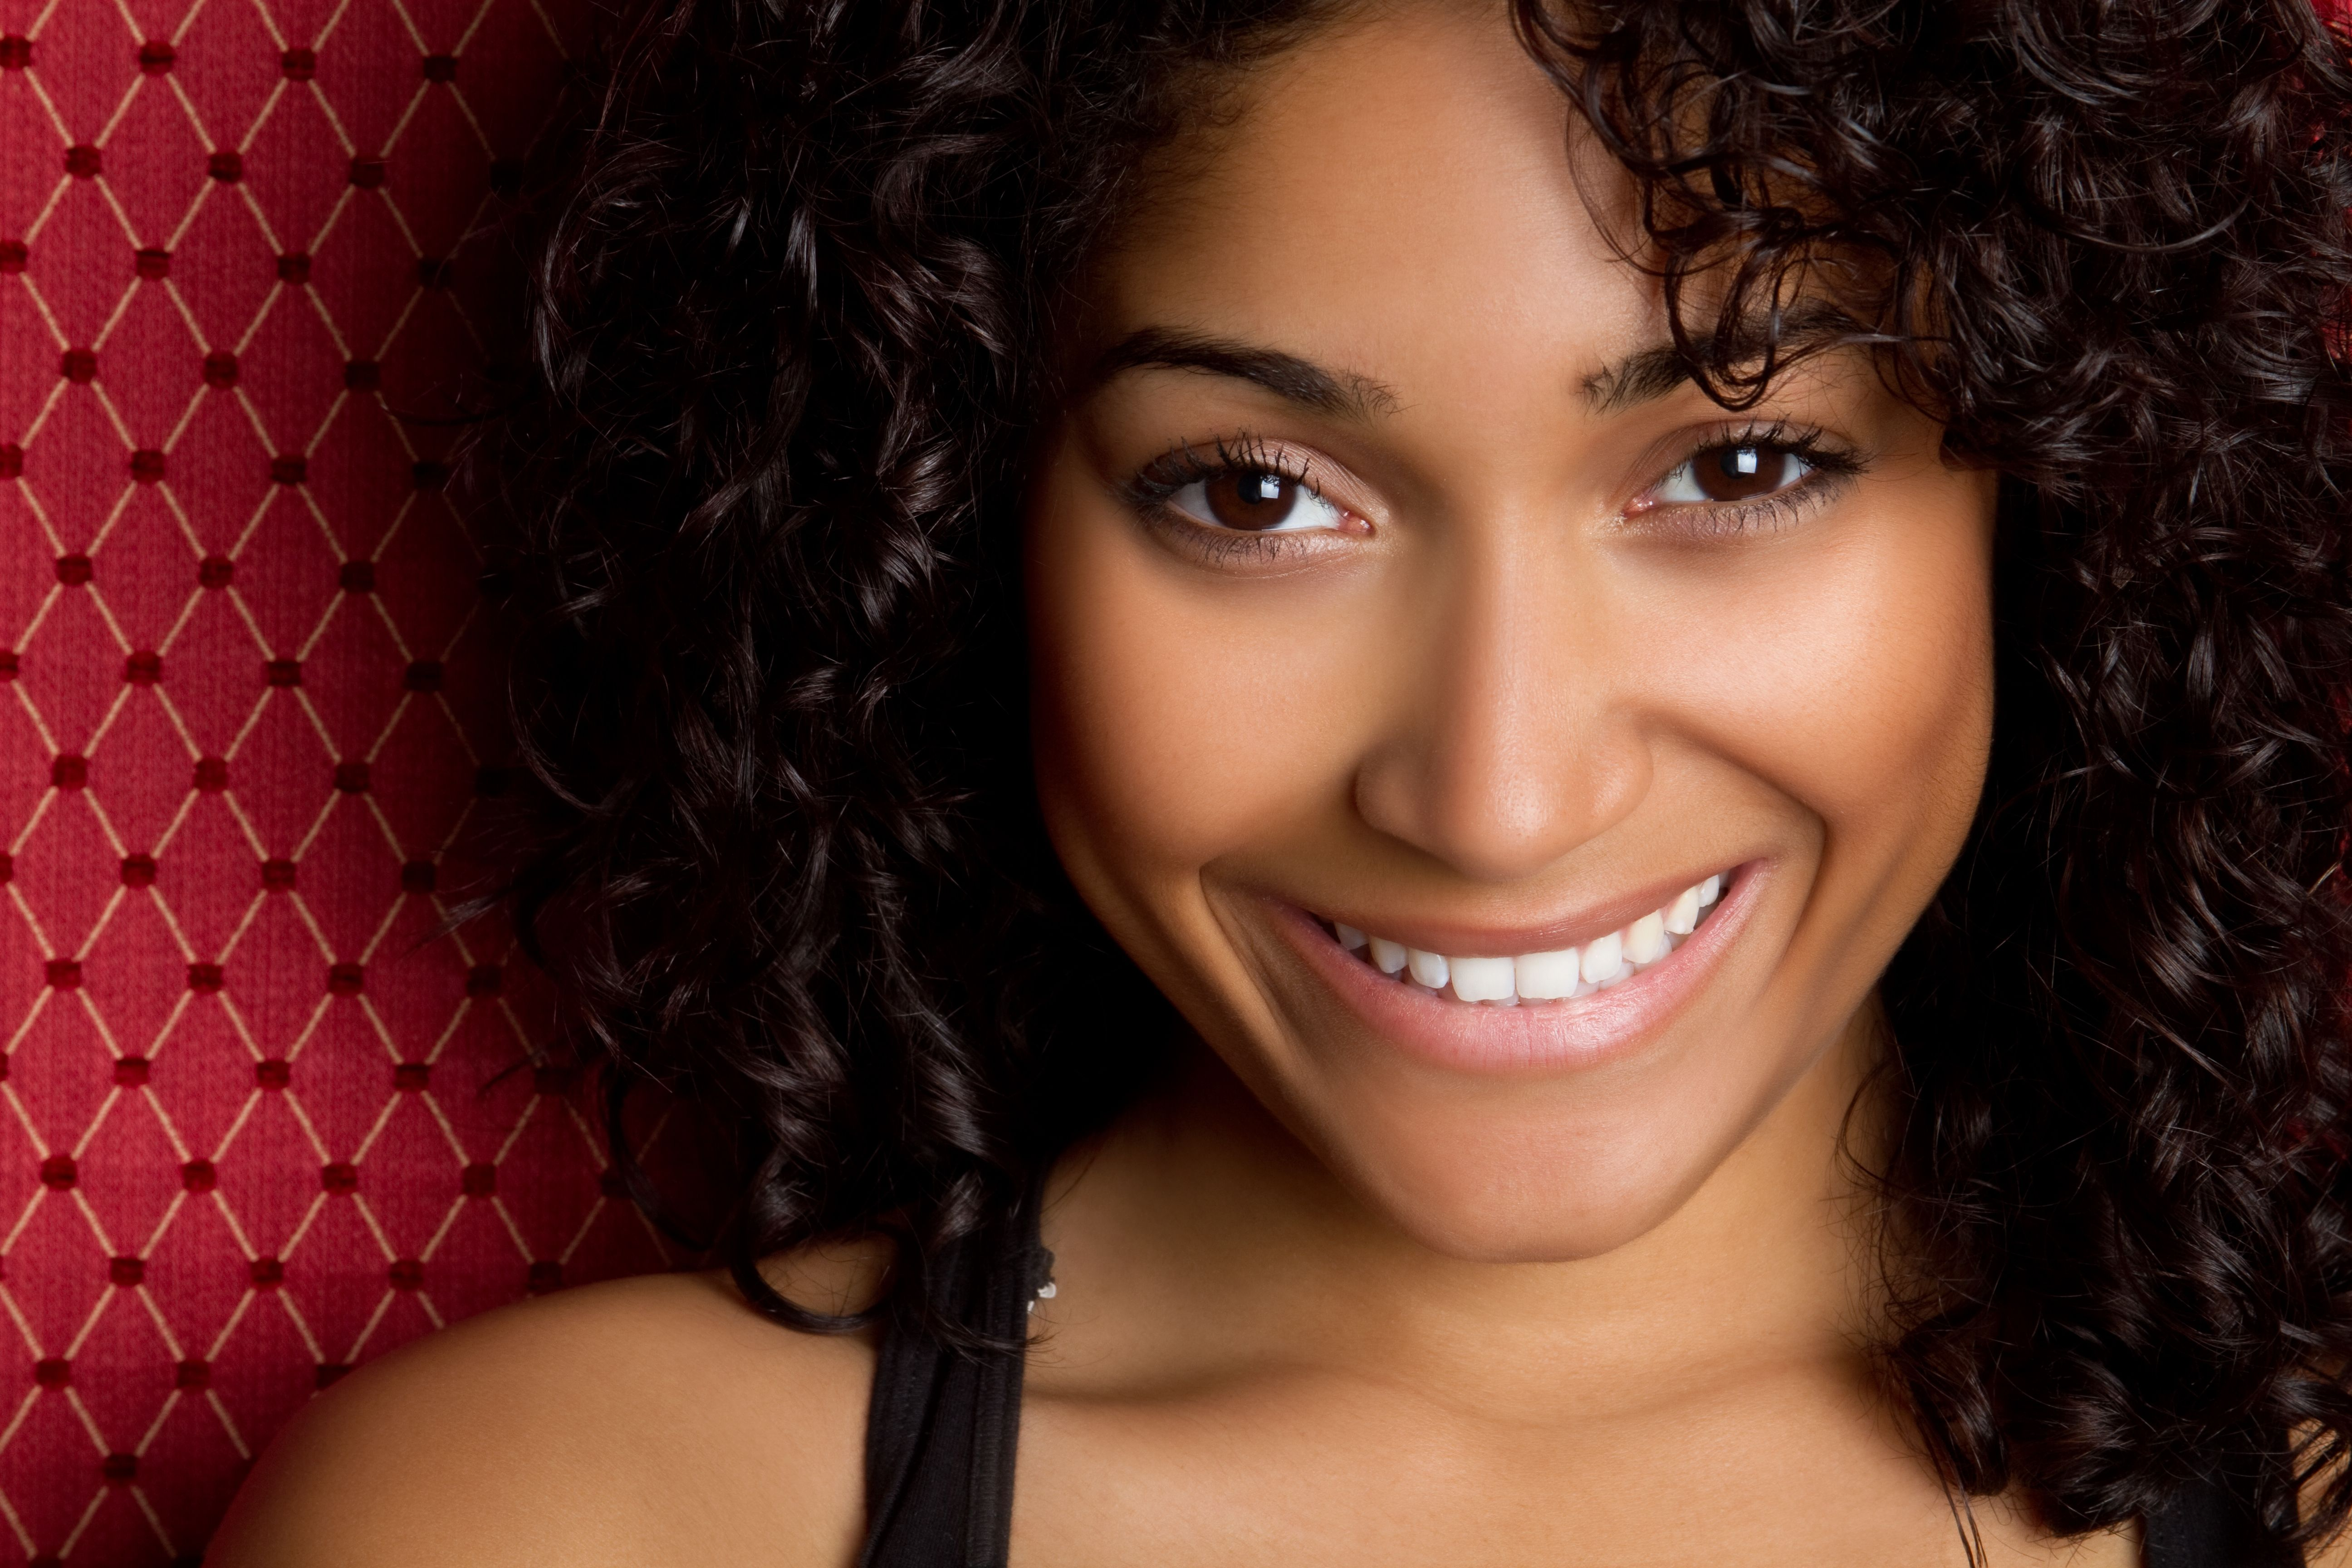 Portrait of beautiful smiling woman with dark brown hair